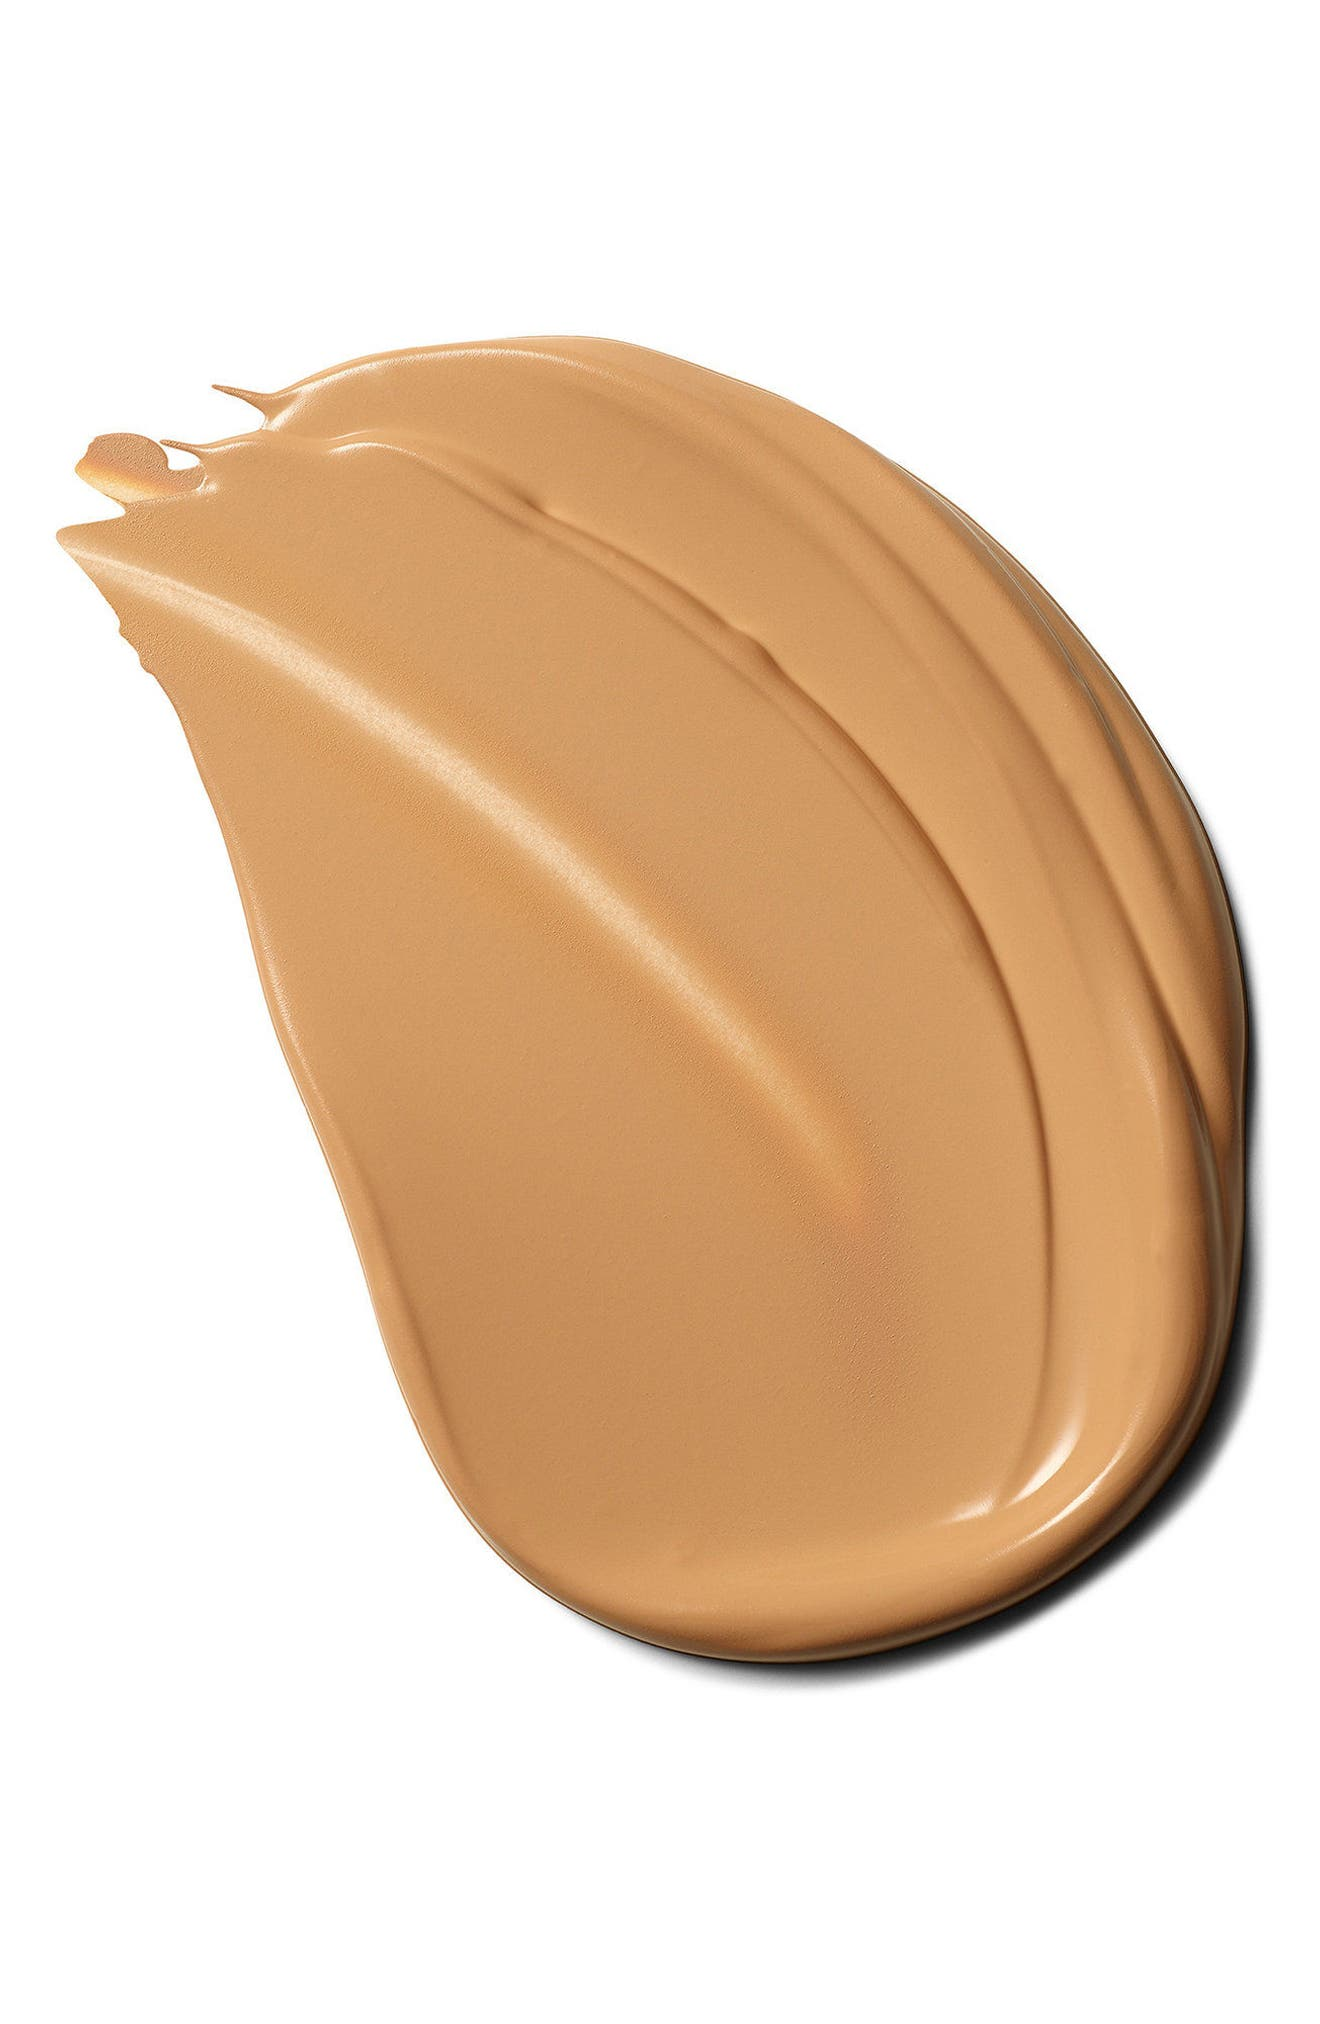 Estee Lauder Double Wear Maximum Cover Camouflage Makeup For Face And Body Spf 15 - 1 Honey Bronze